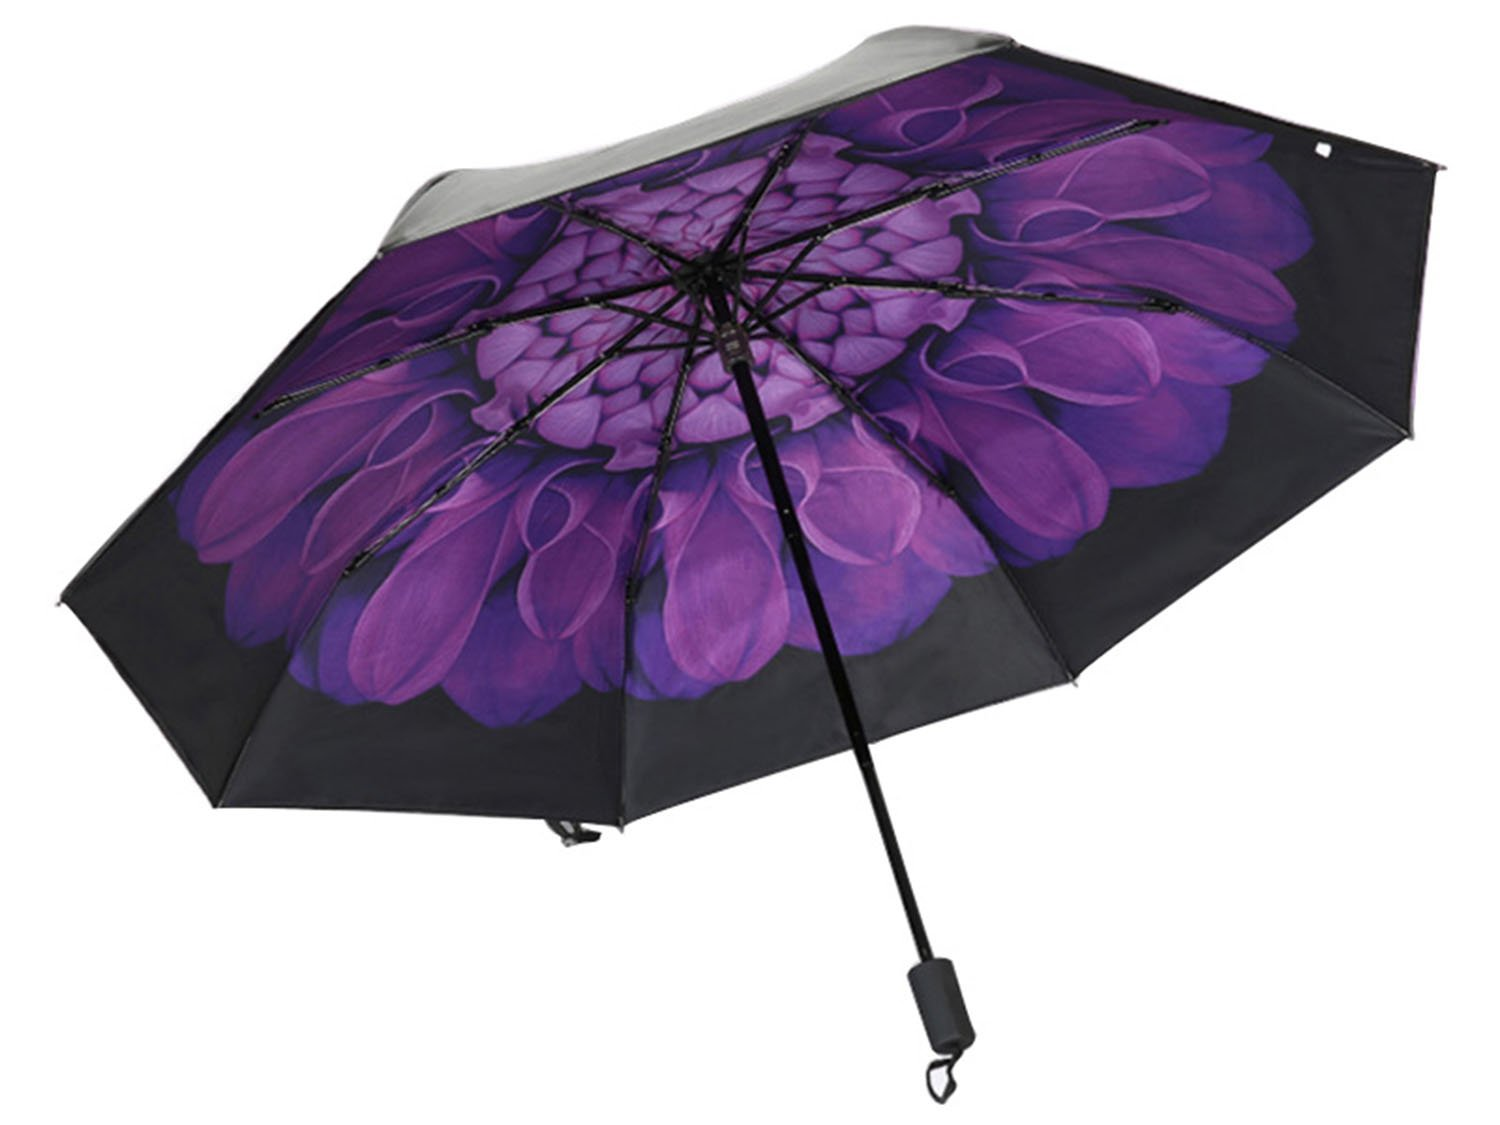 Amazon.com: Umbrella, Eddis Travel Umbrella Foldable Golf Umbrella with Sunscreen and UV Protection 9.8in Storage Length(Violet): Sports & Outdoors